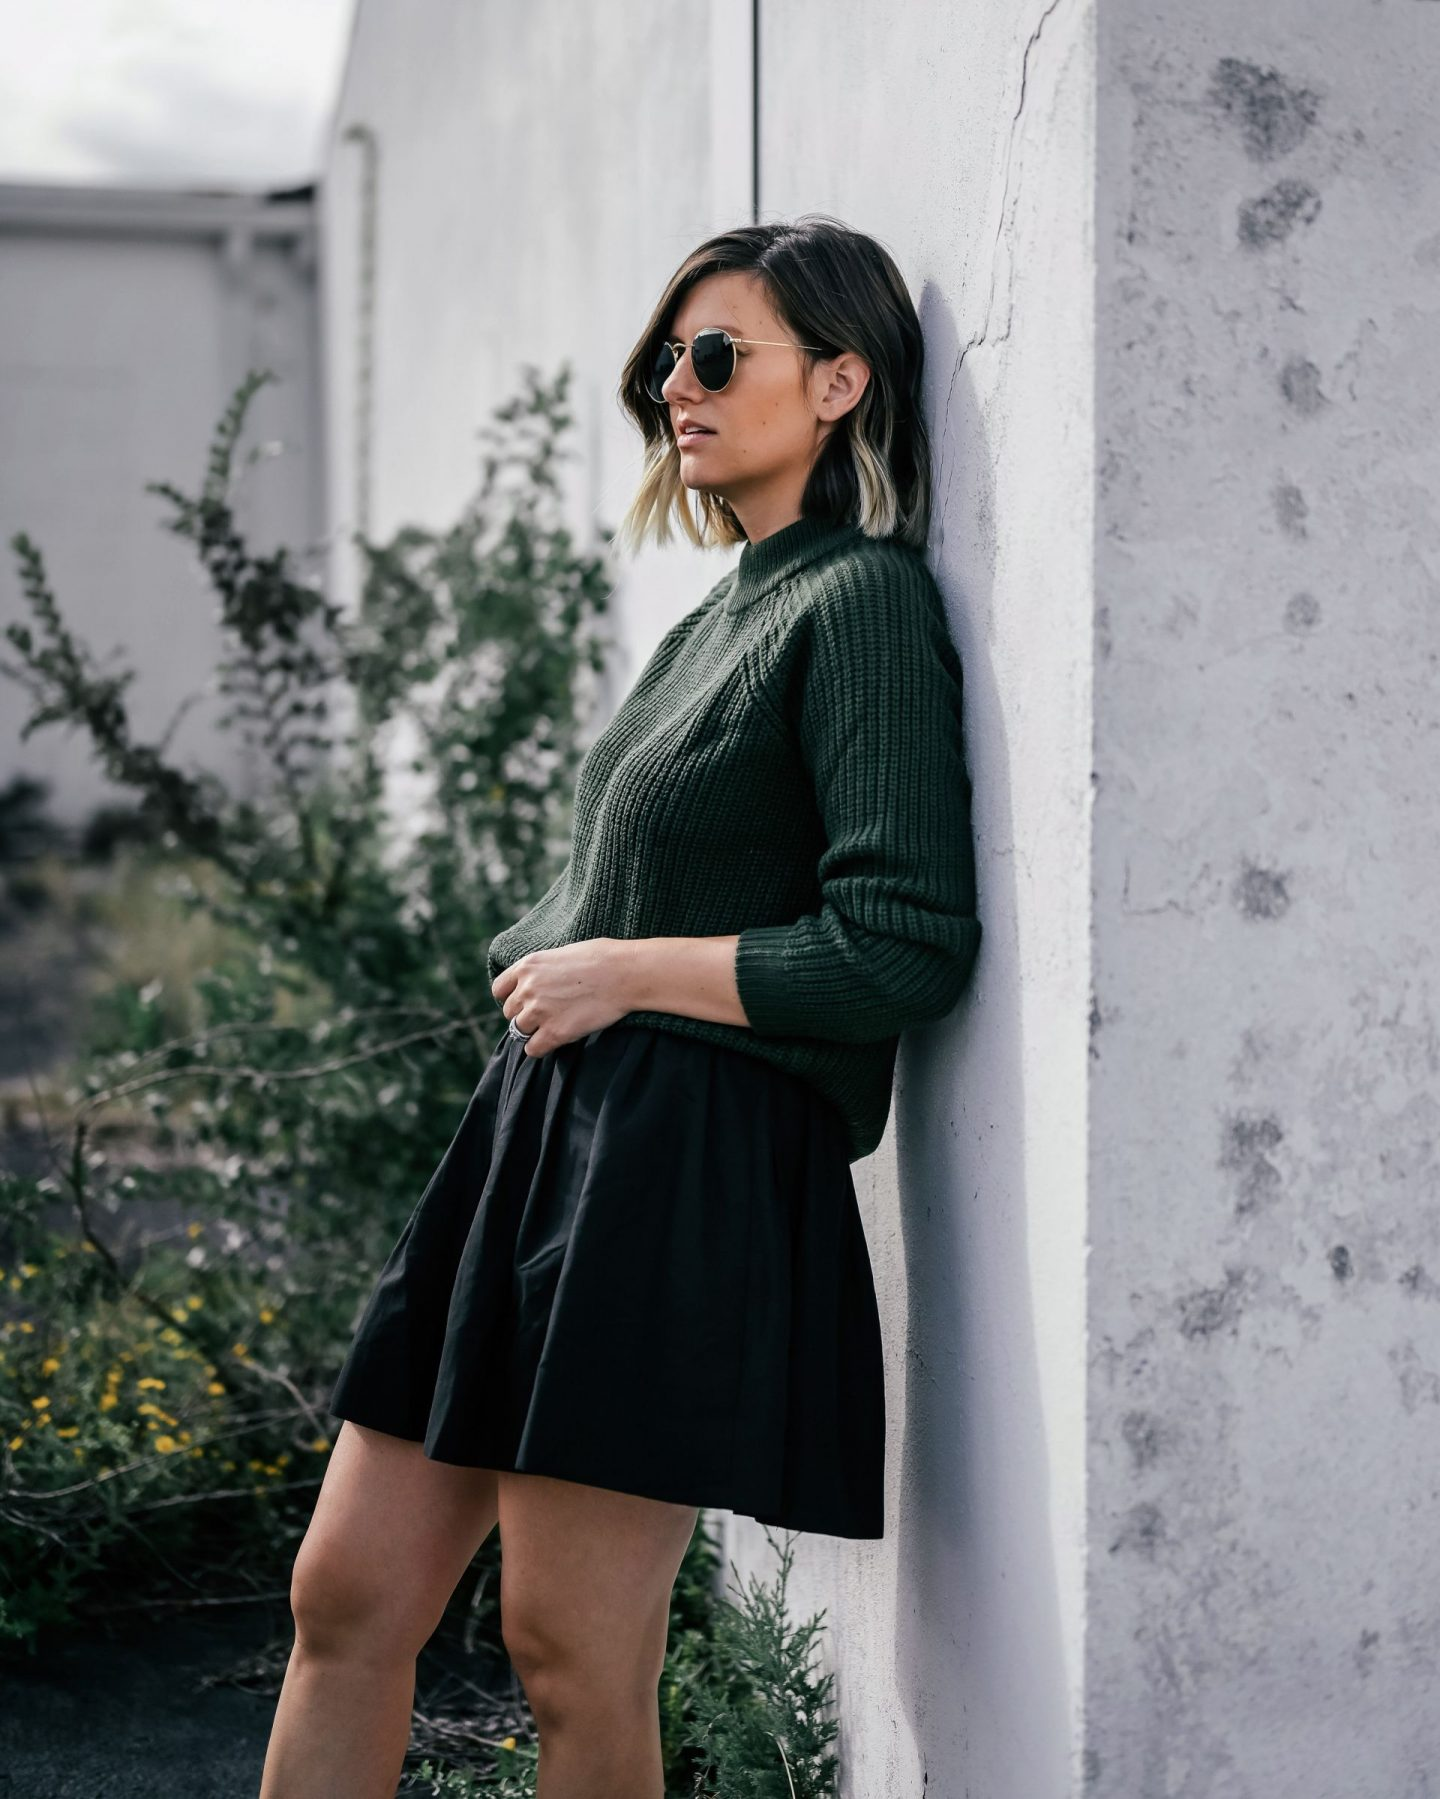 Sweater weather, styling a high neck sweater,